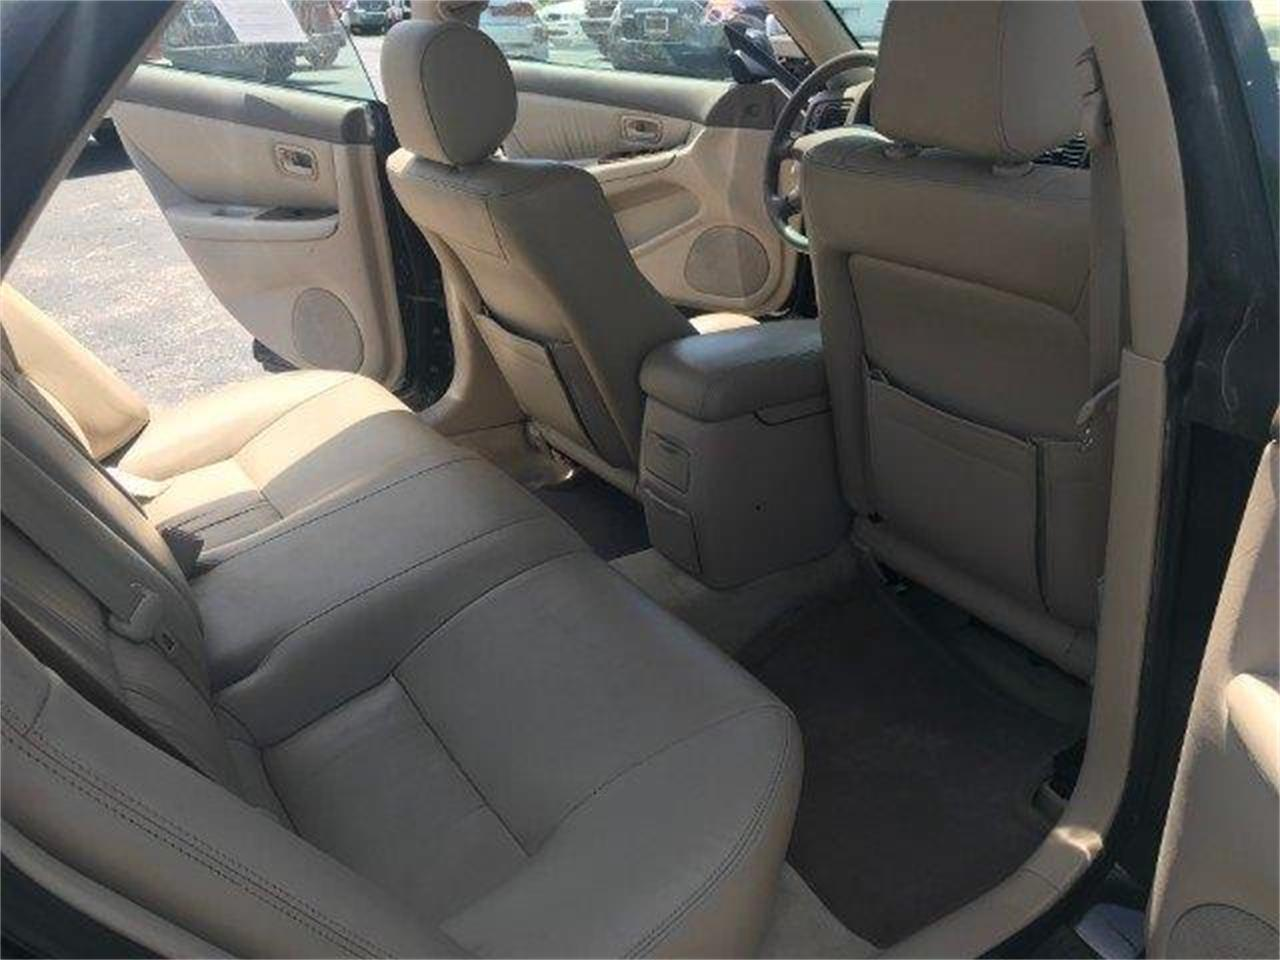 Surprising 1999 Lexus Es300 For Sale In Tavares Fl Classiccarsbay Com Gmtry Best Dining Table And Chair Ideas Images Gmtryco